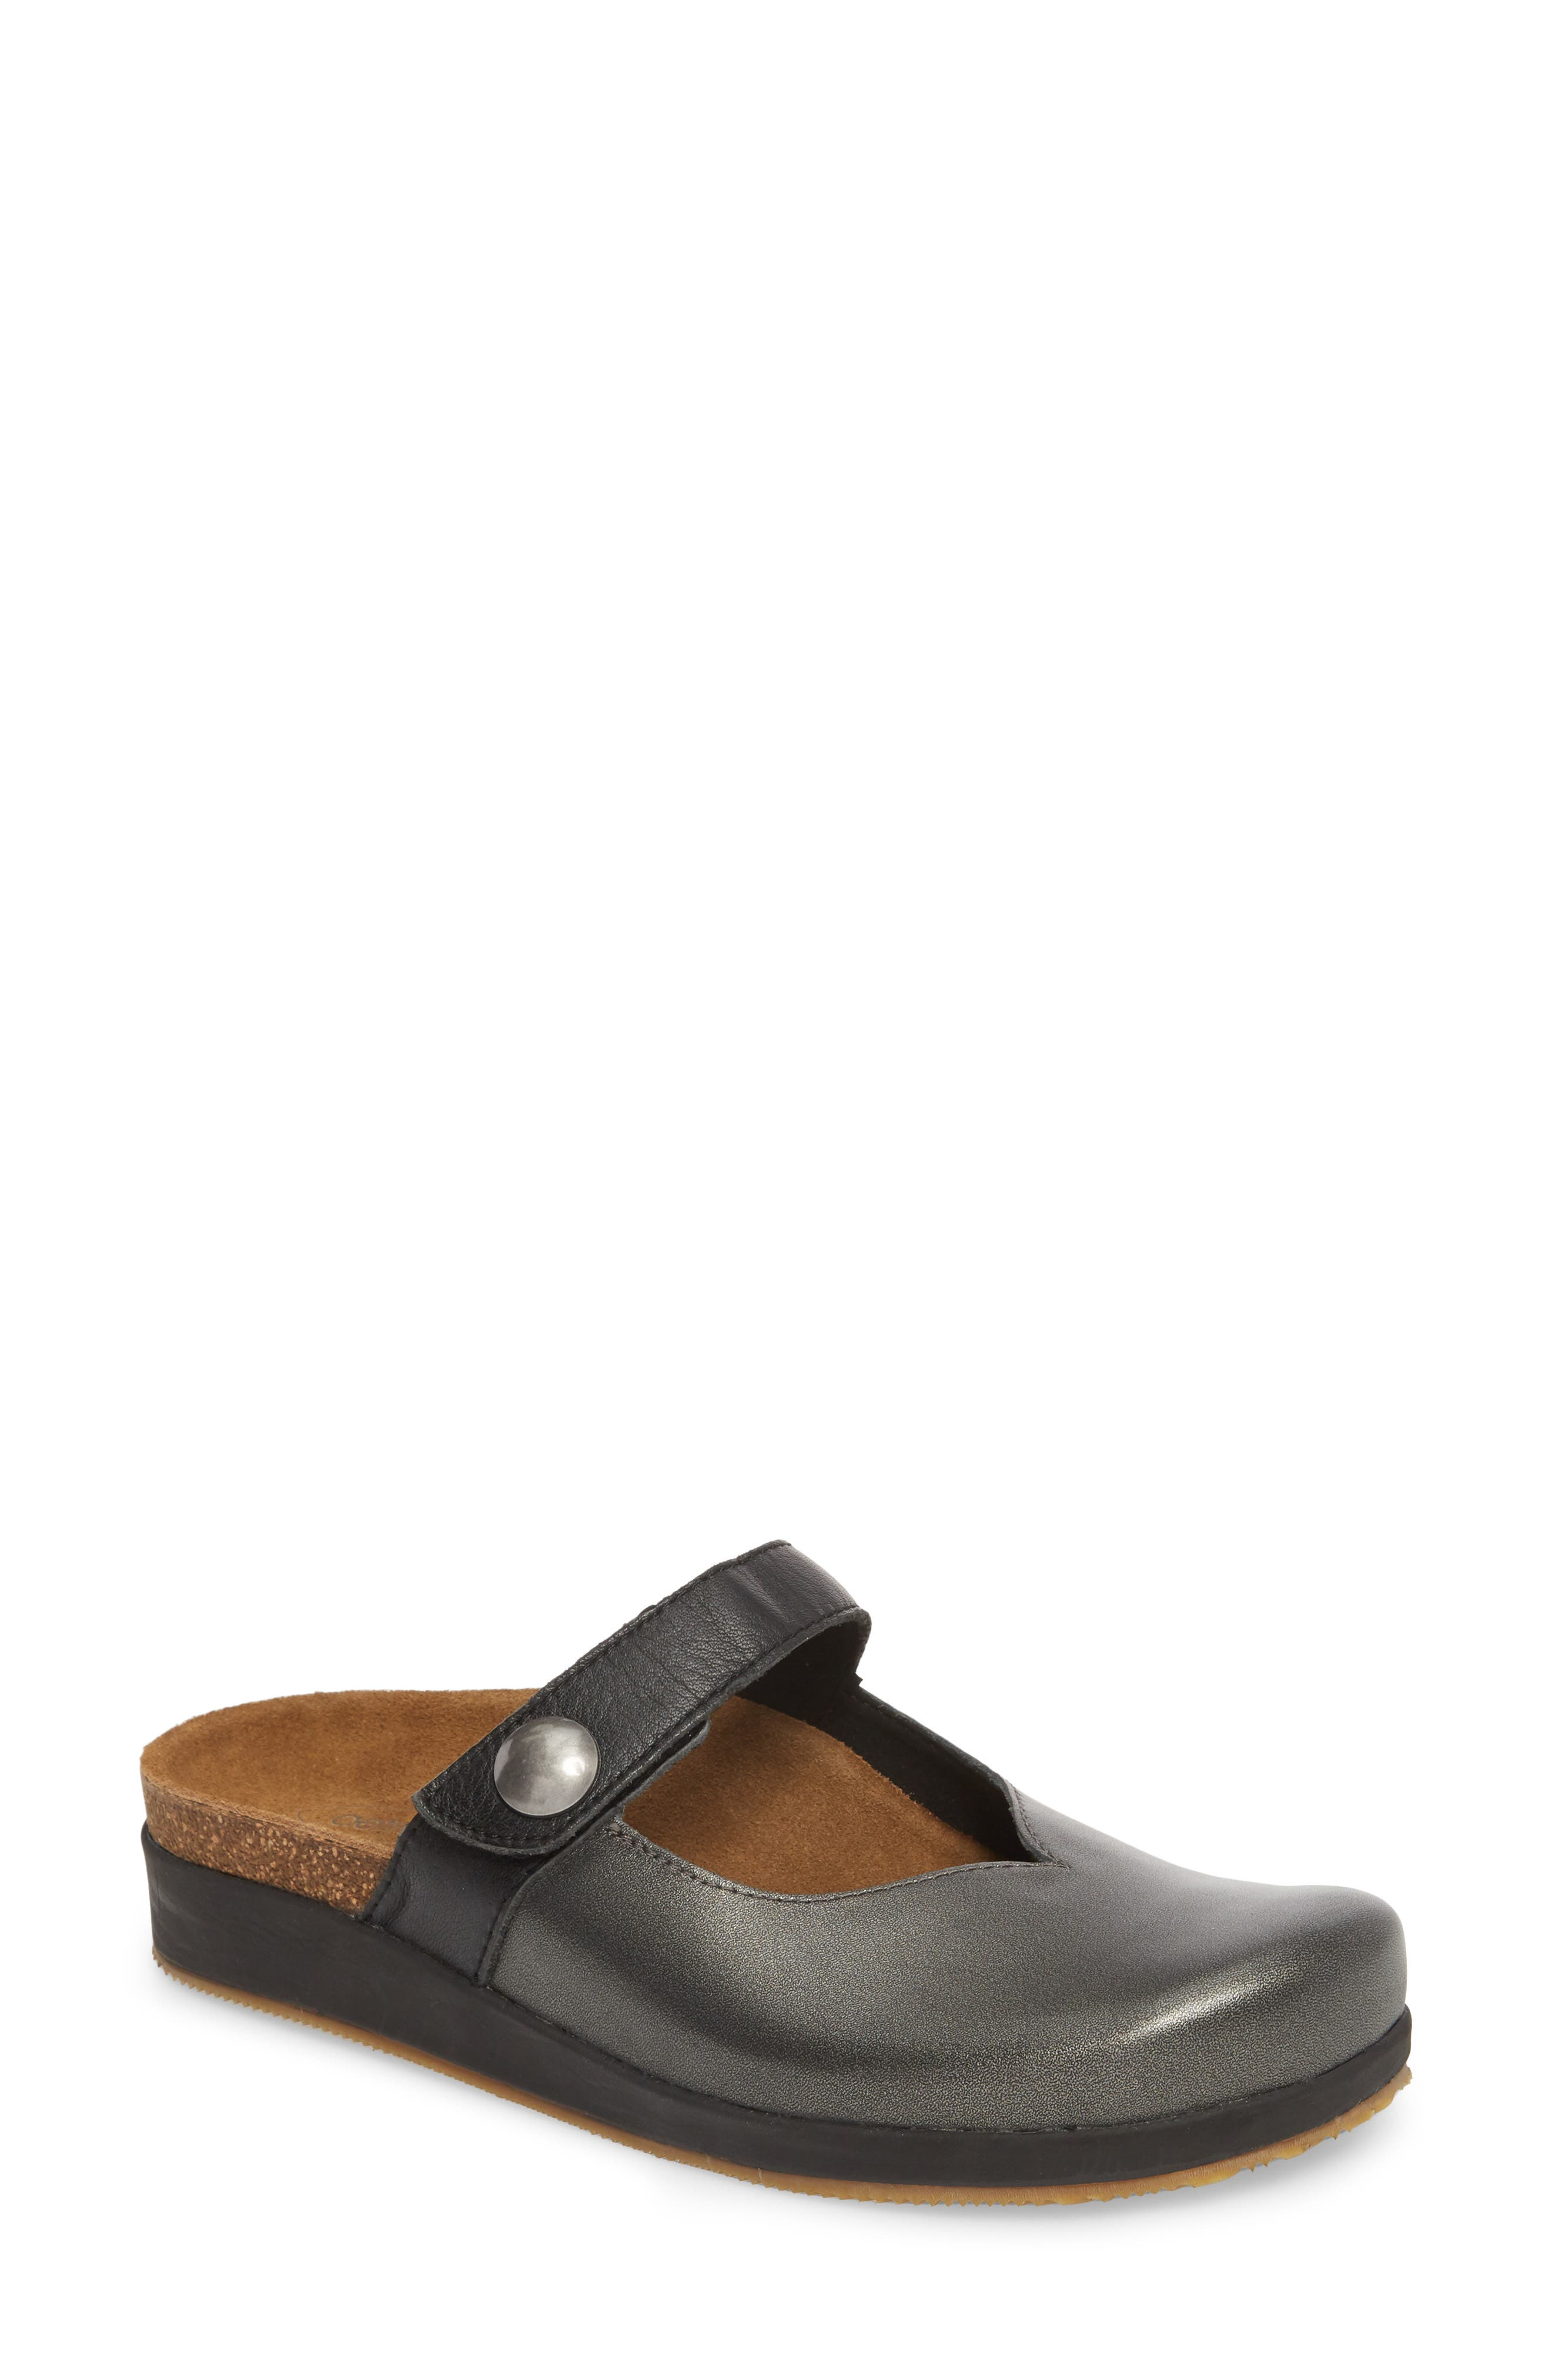 Scarlett Clog,                         Main,                         color, Pewter Leather